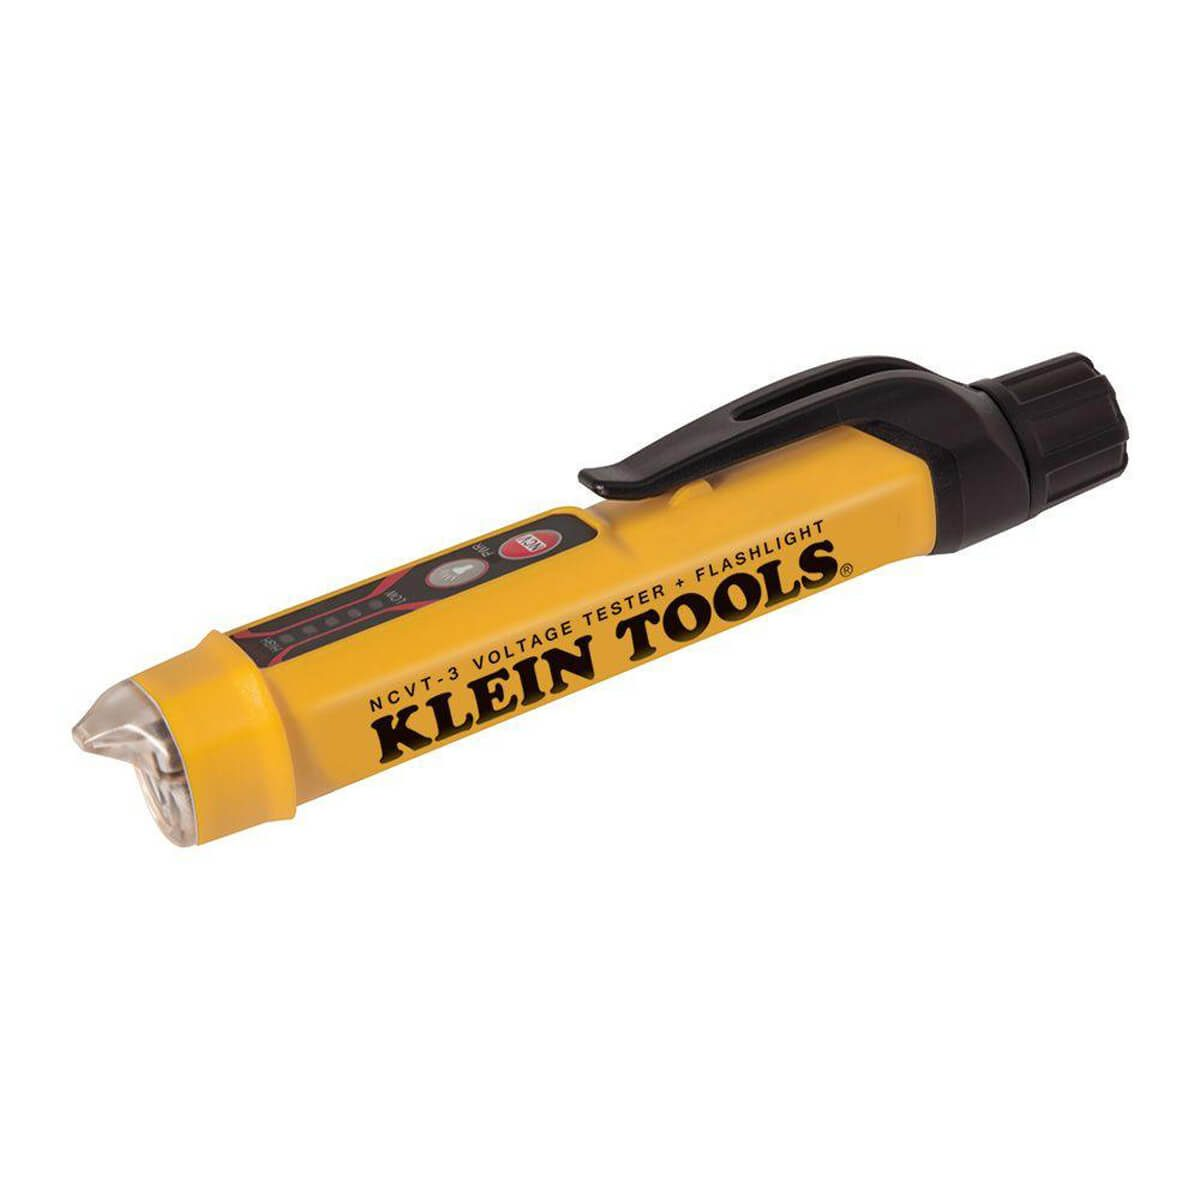 Klein Non-Contact Voltage Tester with Flashlight